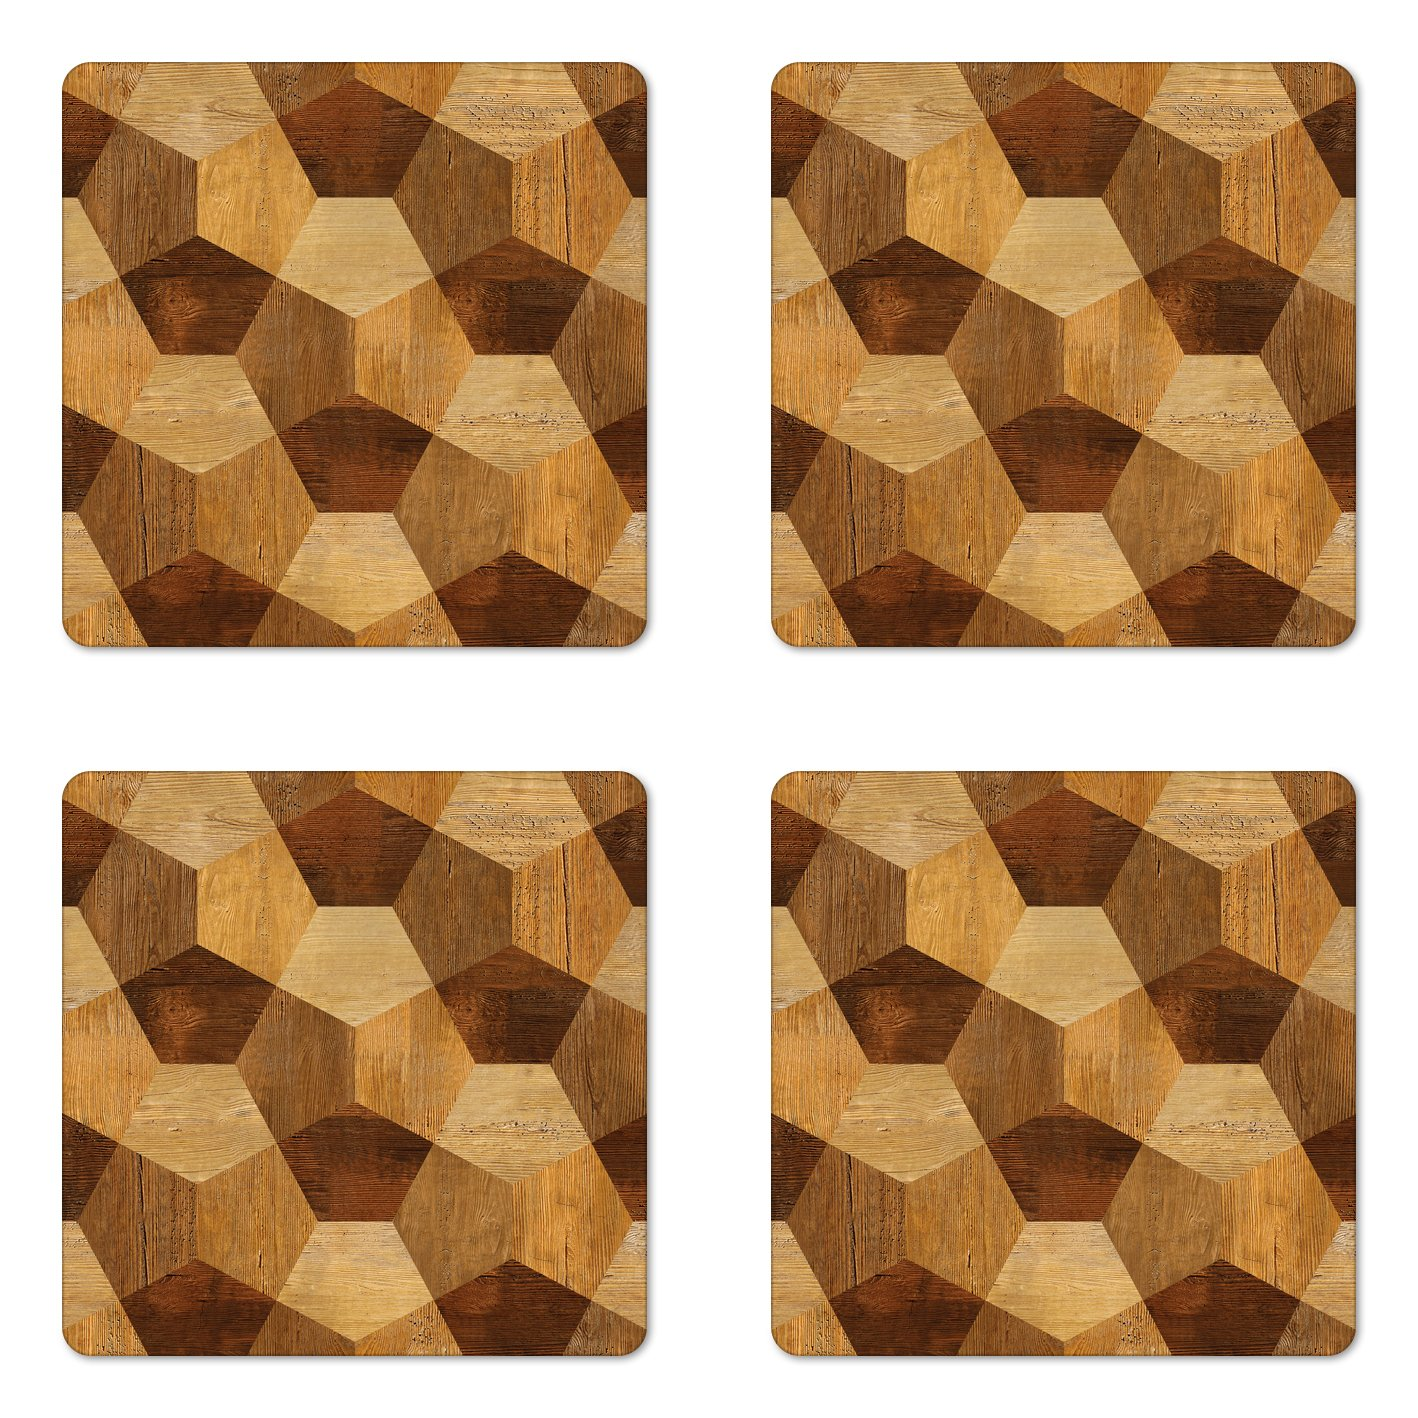 Ambesonne Retro Coaster Set of Four, Abstract Parquet Flooring Wooden Rustic with Geometric Monochrome Pattern, Square Hardboard Gloss Coasters for Drinks, Brown Pale Brown